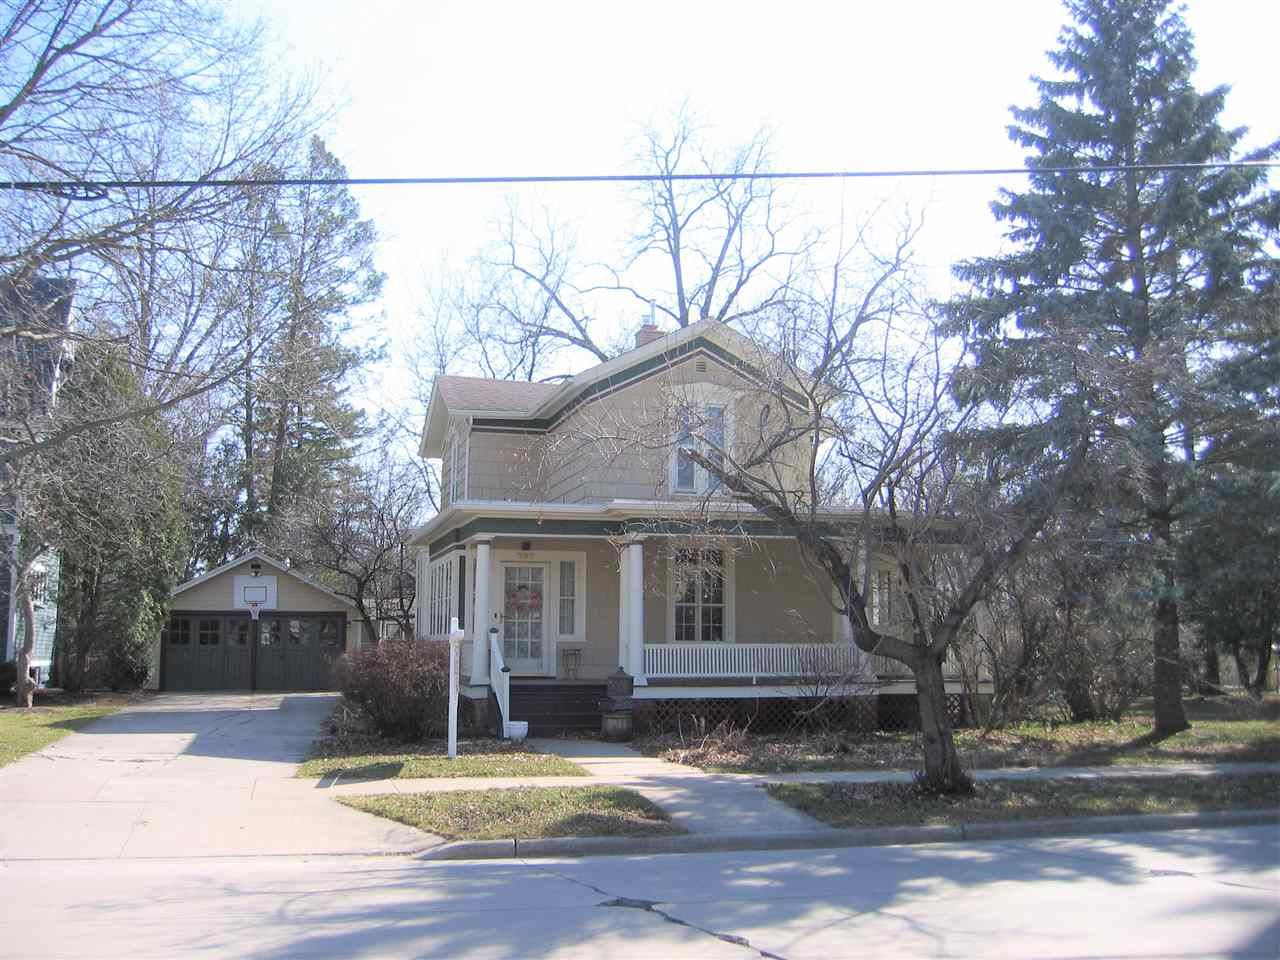 737 W PROSPECT Avenue, Appleton, WI 54915 - MLS#: 50229436